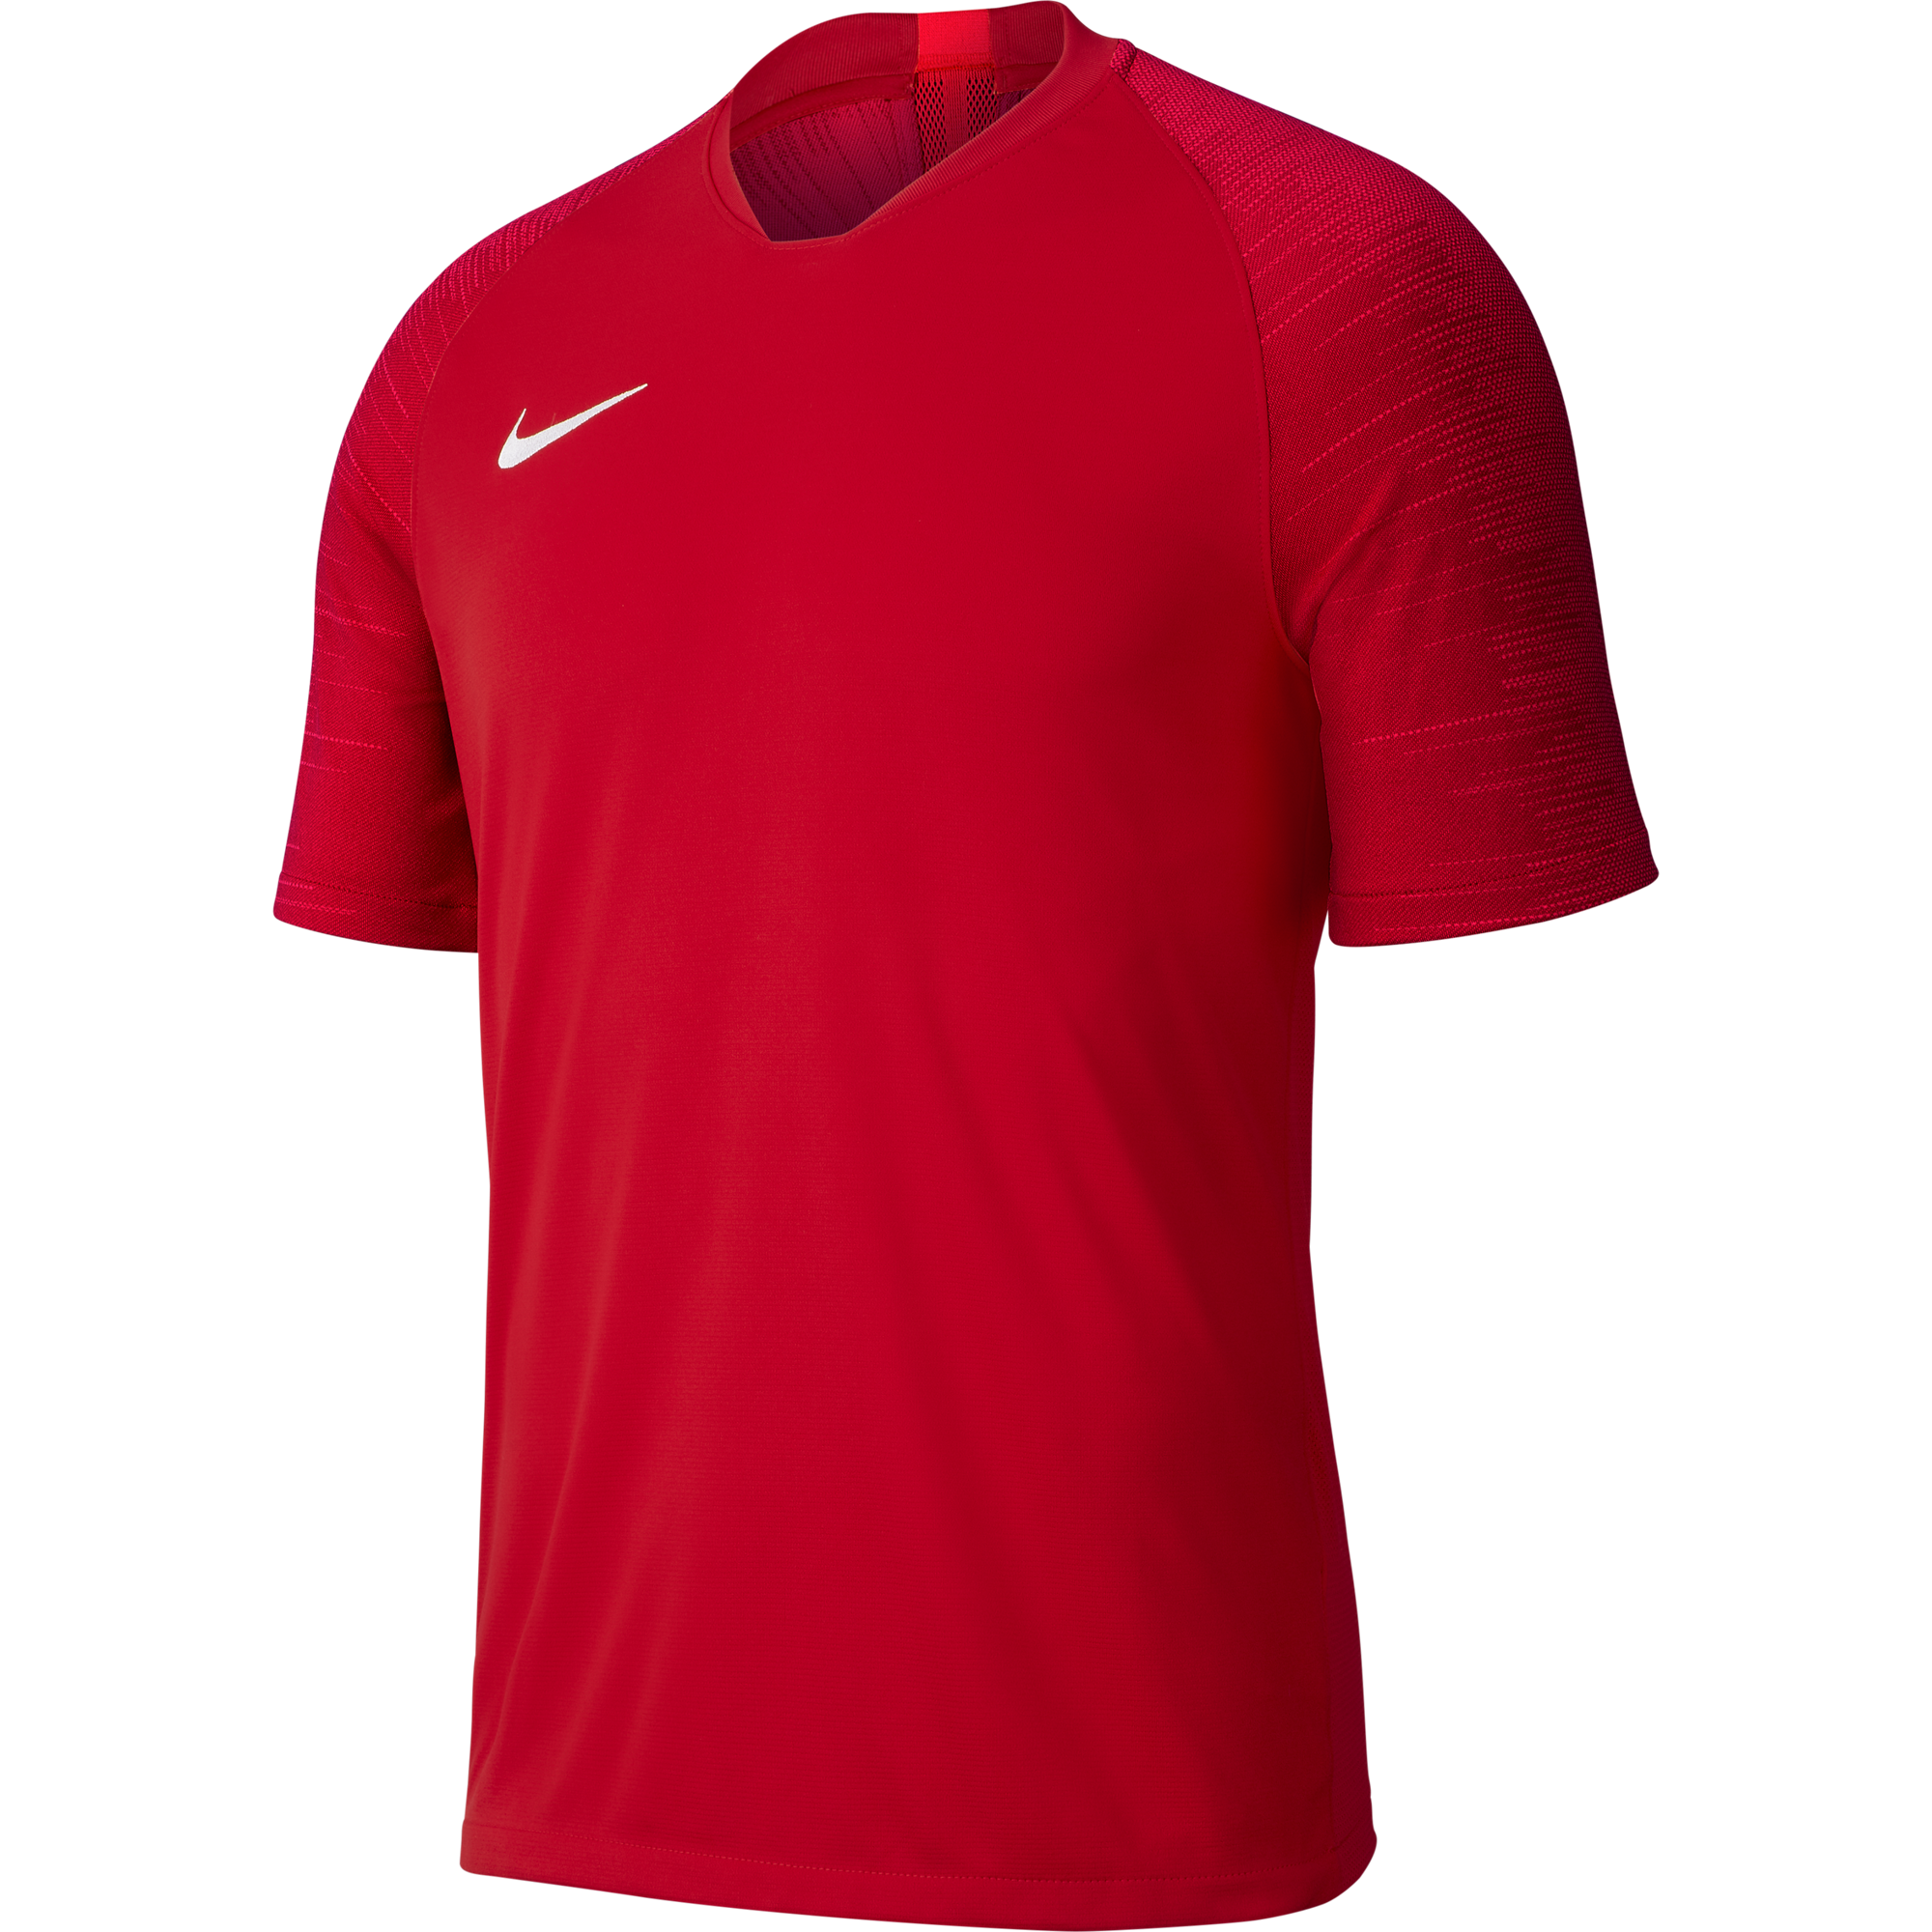 nike strike jersey uni red bright crimson  24144 p